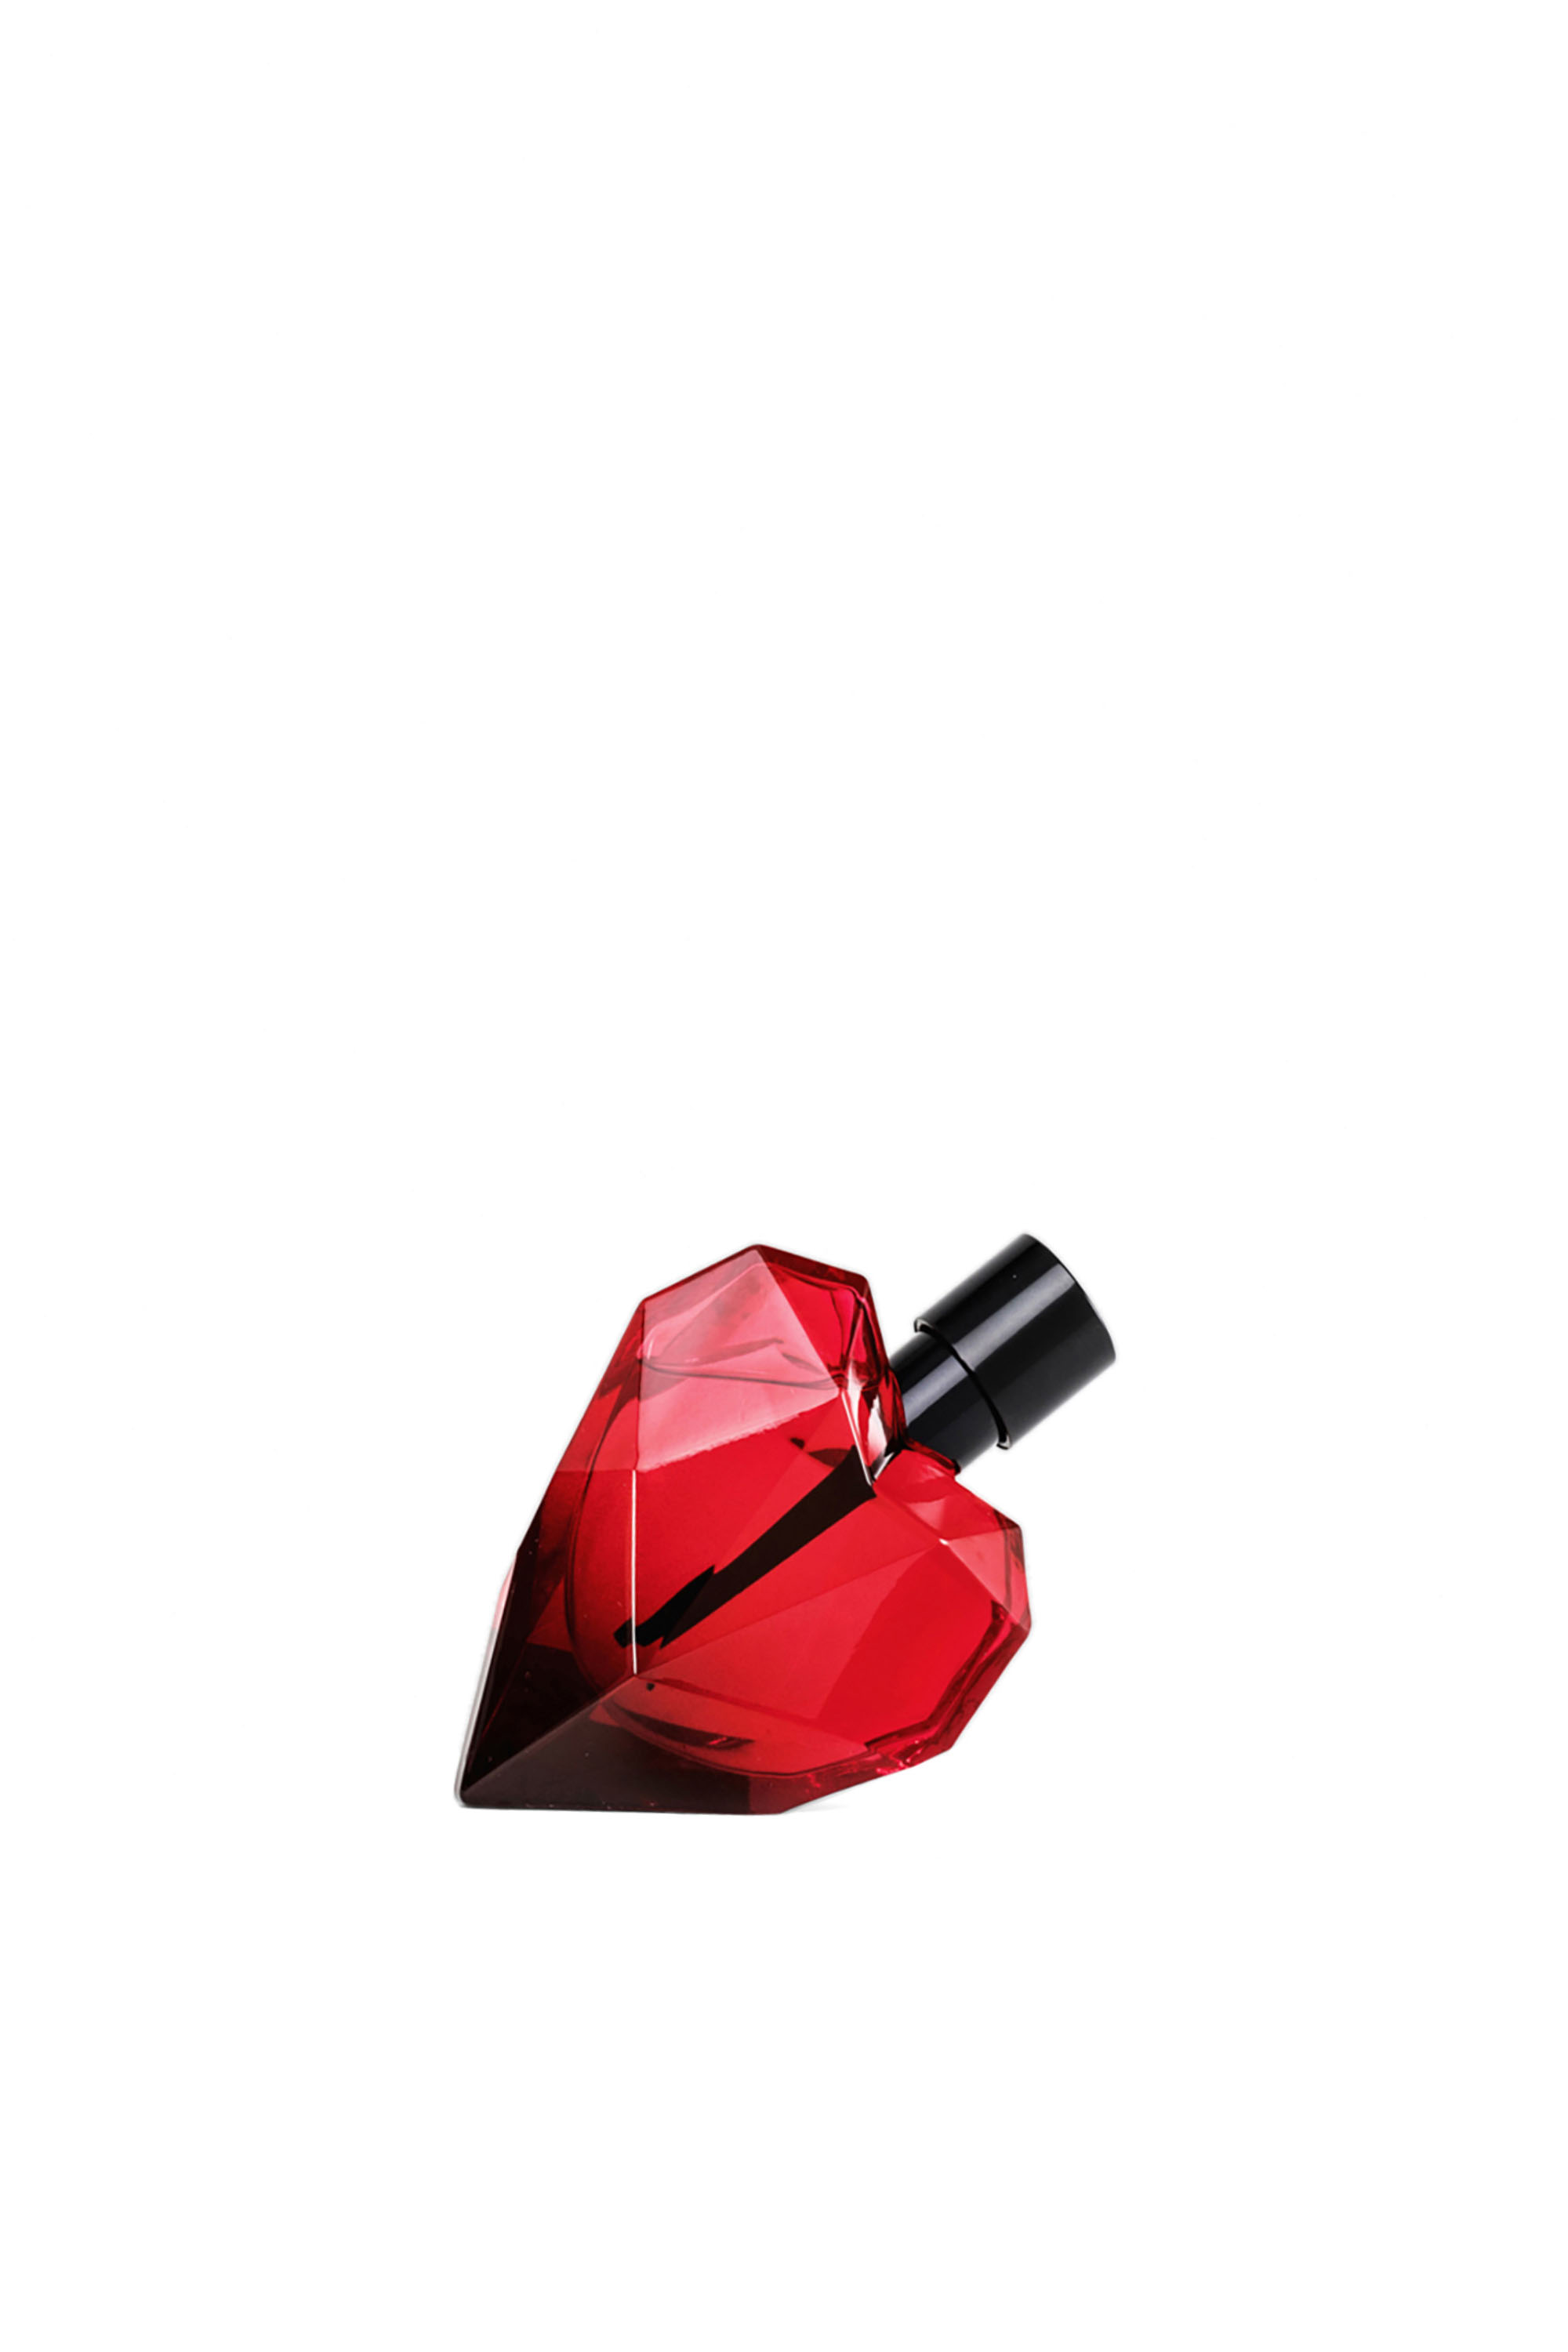 Diesel - LOVERDOSE RED KISS EAU DE PARFUM 50ML, Red - Loverdose - Image 1